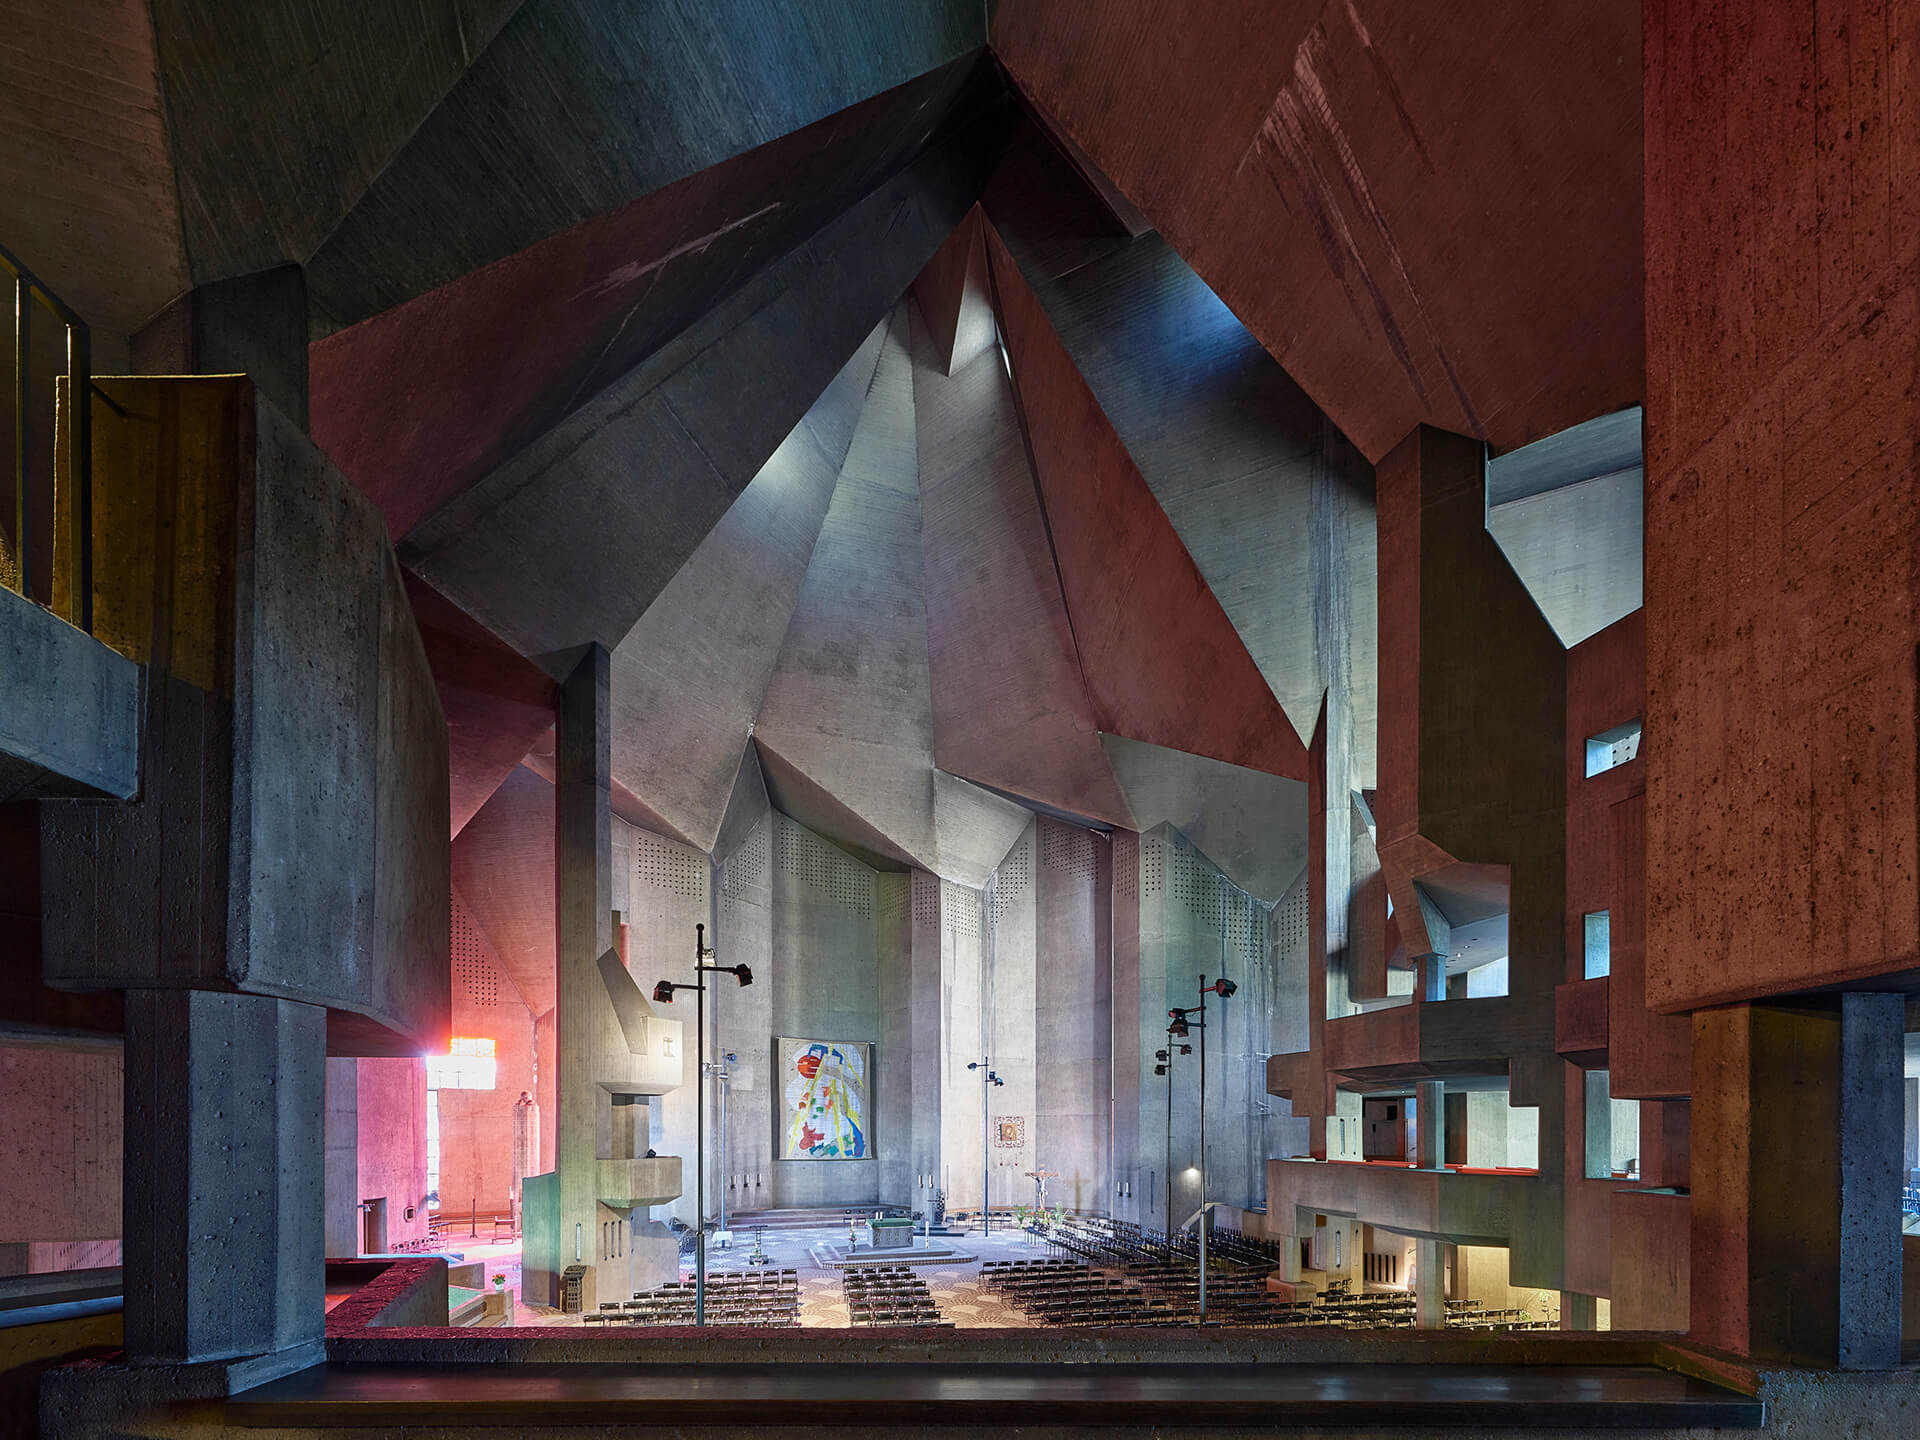 The jagged, amorphous volume of the church and its cavernous interiors connect with the mountaineous terrain of the region | BÖHM100: The Concrete Cathedral of Neviges | Deutsches Architekturmusem (DAM) | STIRworld